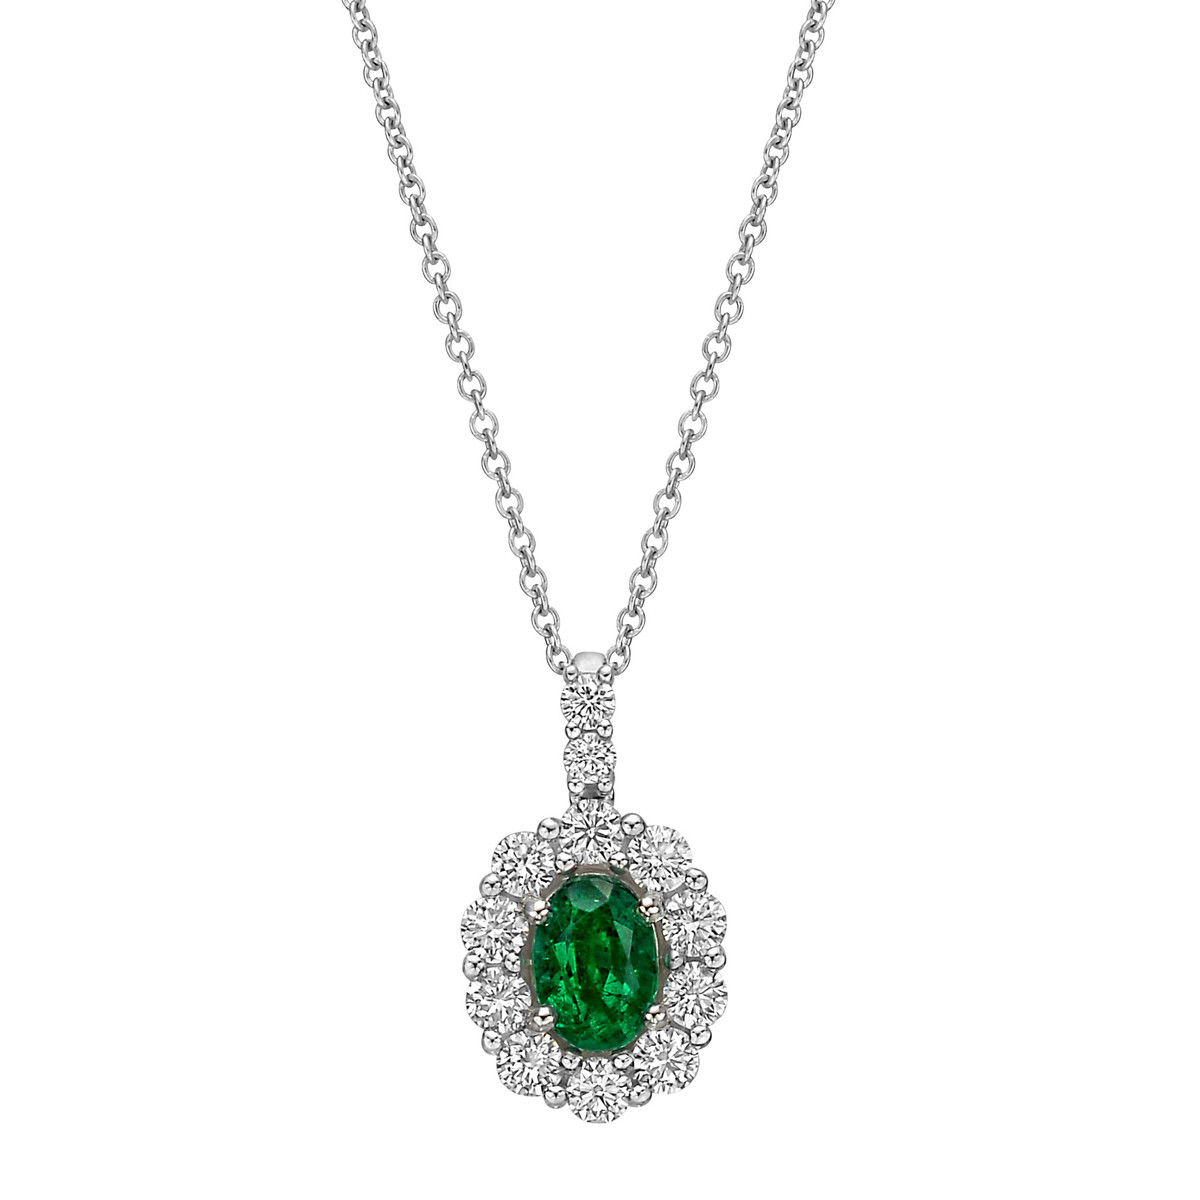 Emerald & Diamond Cluster Pendant Necklace